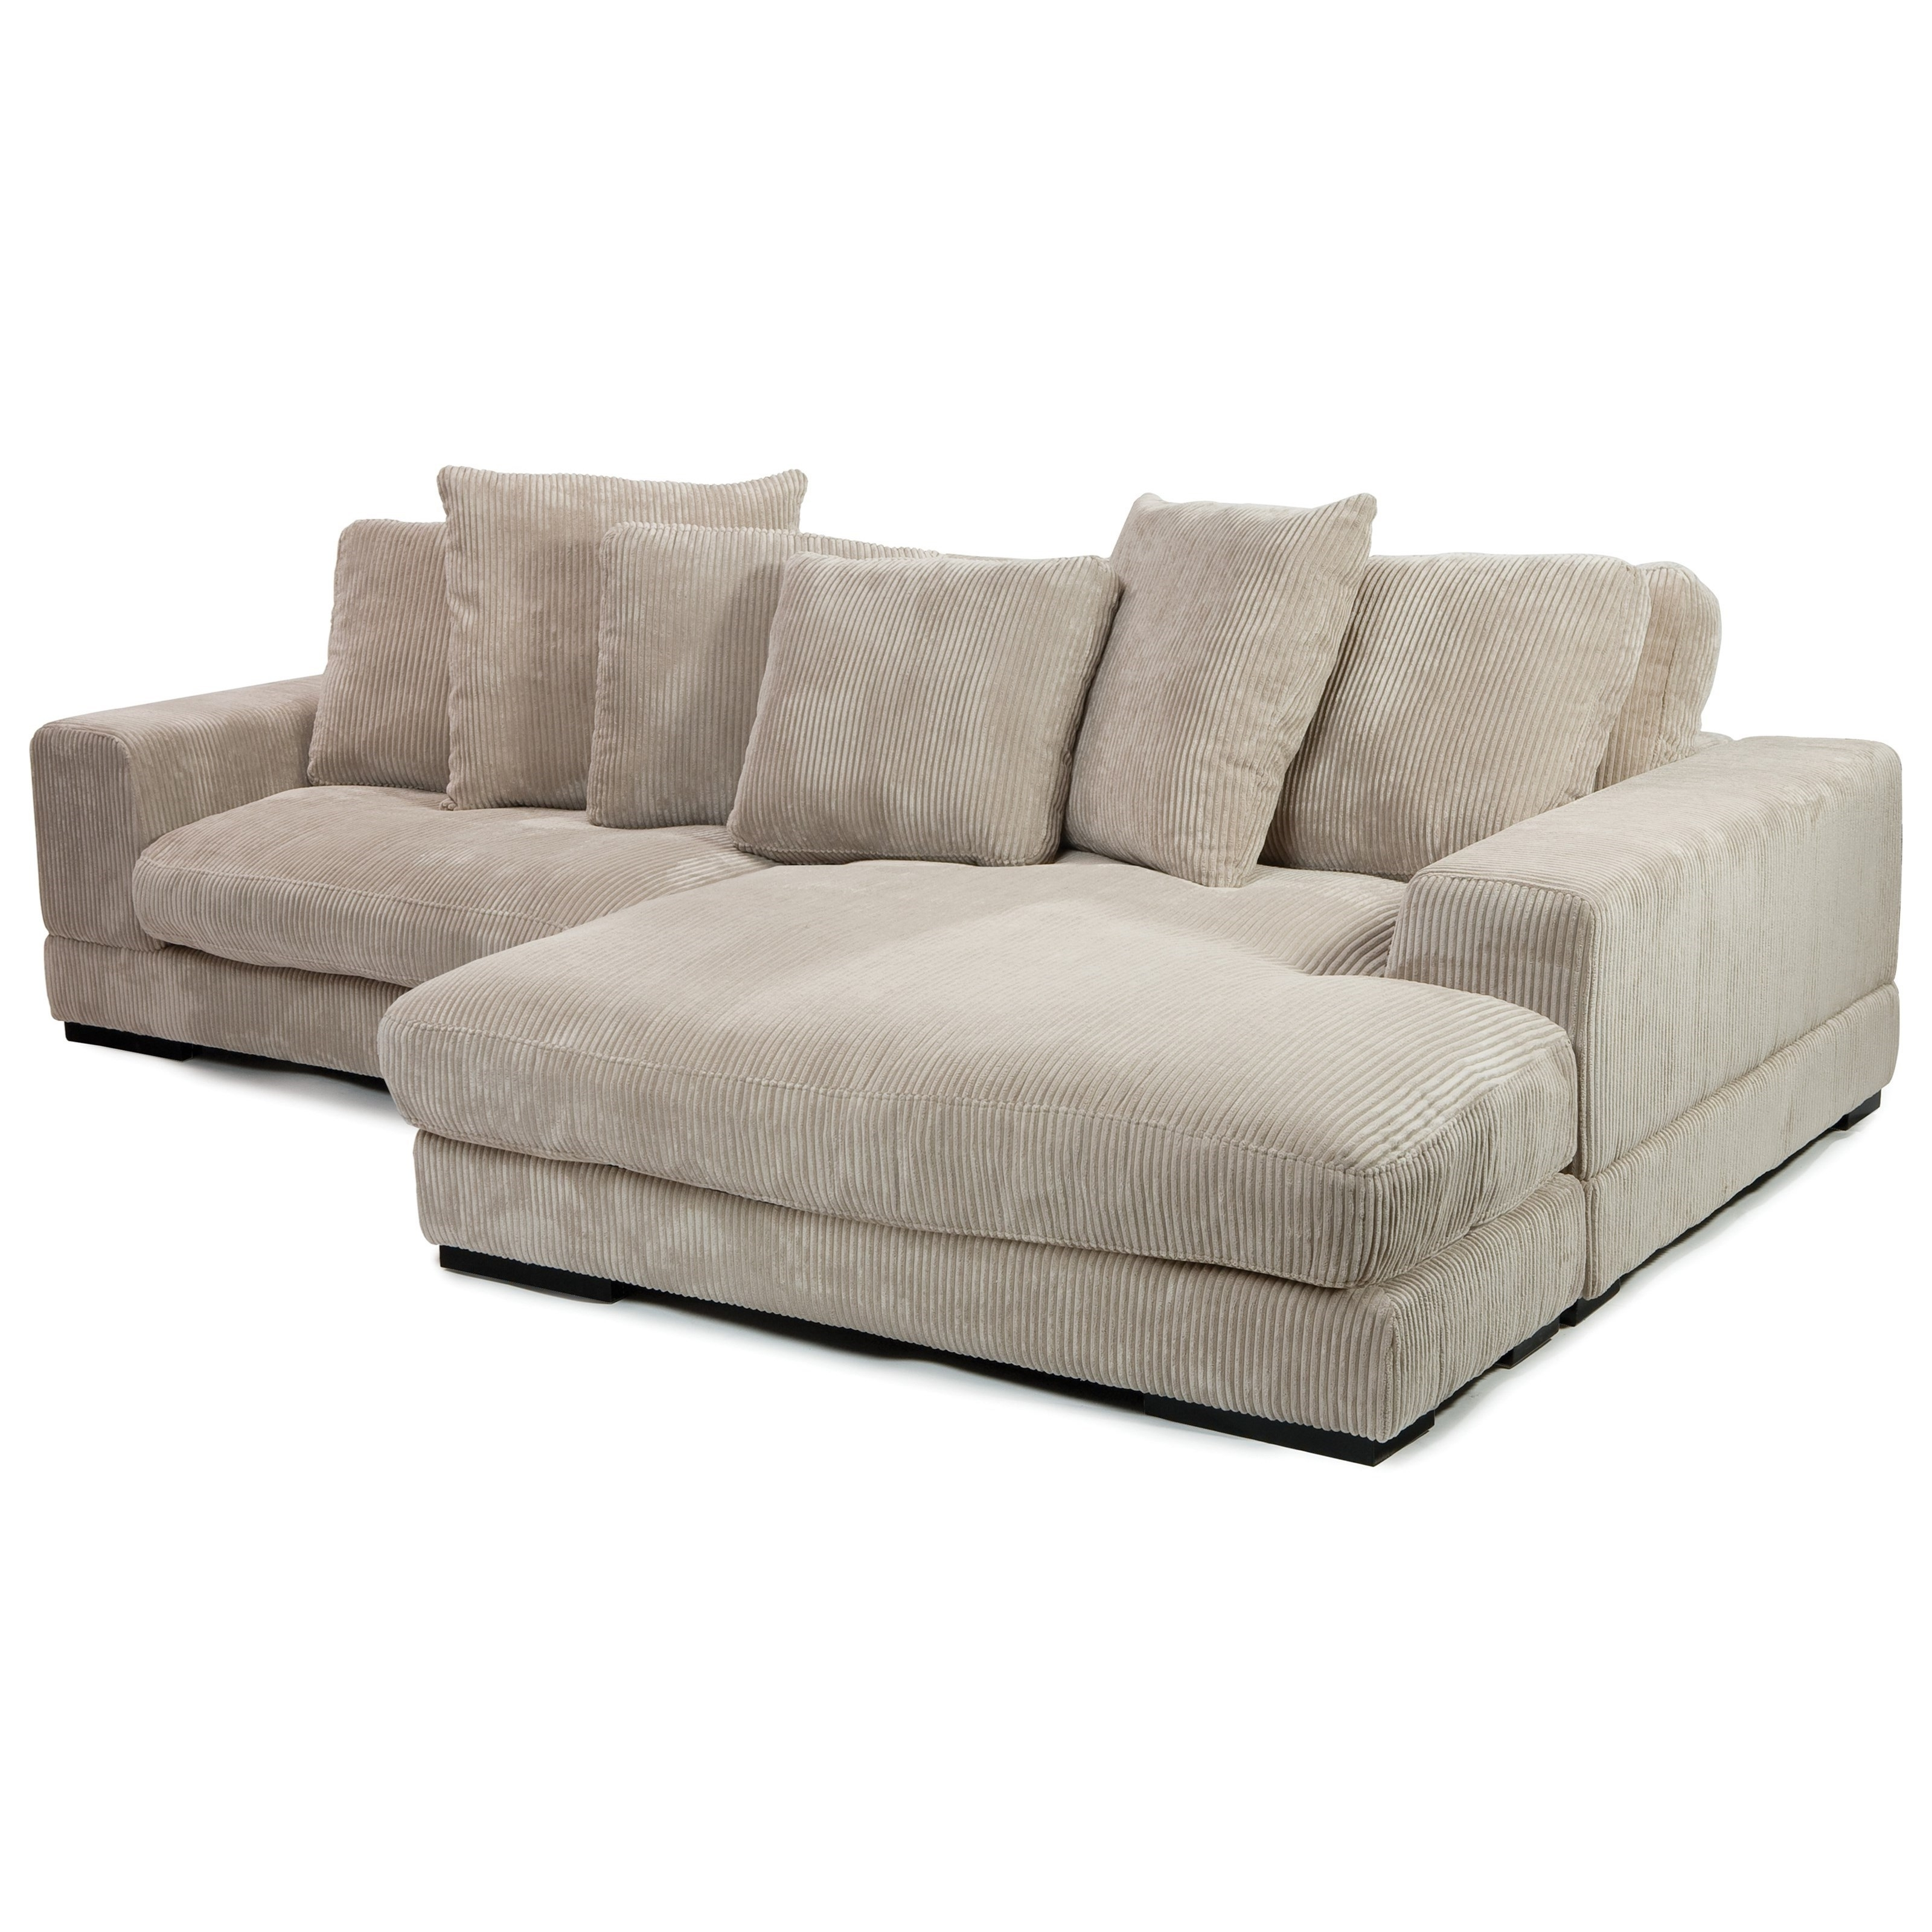 Niagara Sectional Sofas Throughout Favorite Moe's Home Collection Plunge Sectional With Flip Style Chaise (View 10 of 15)